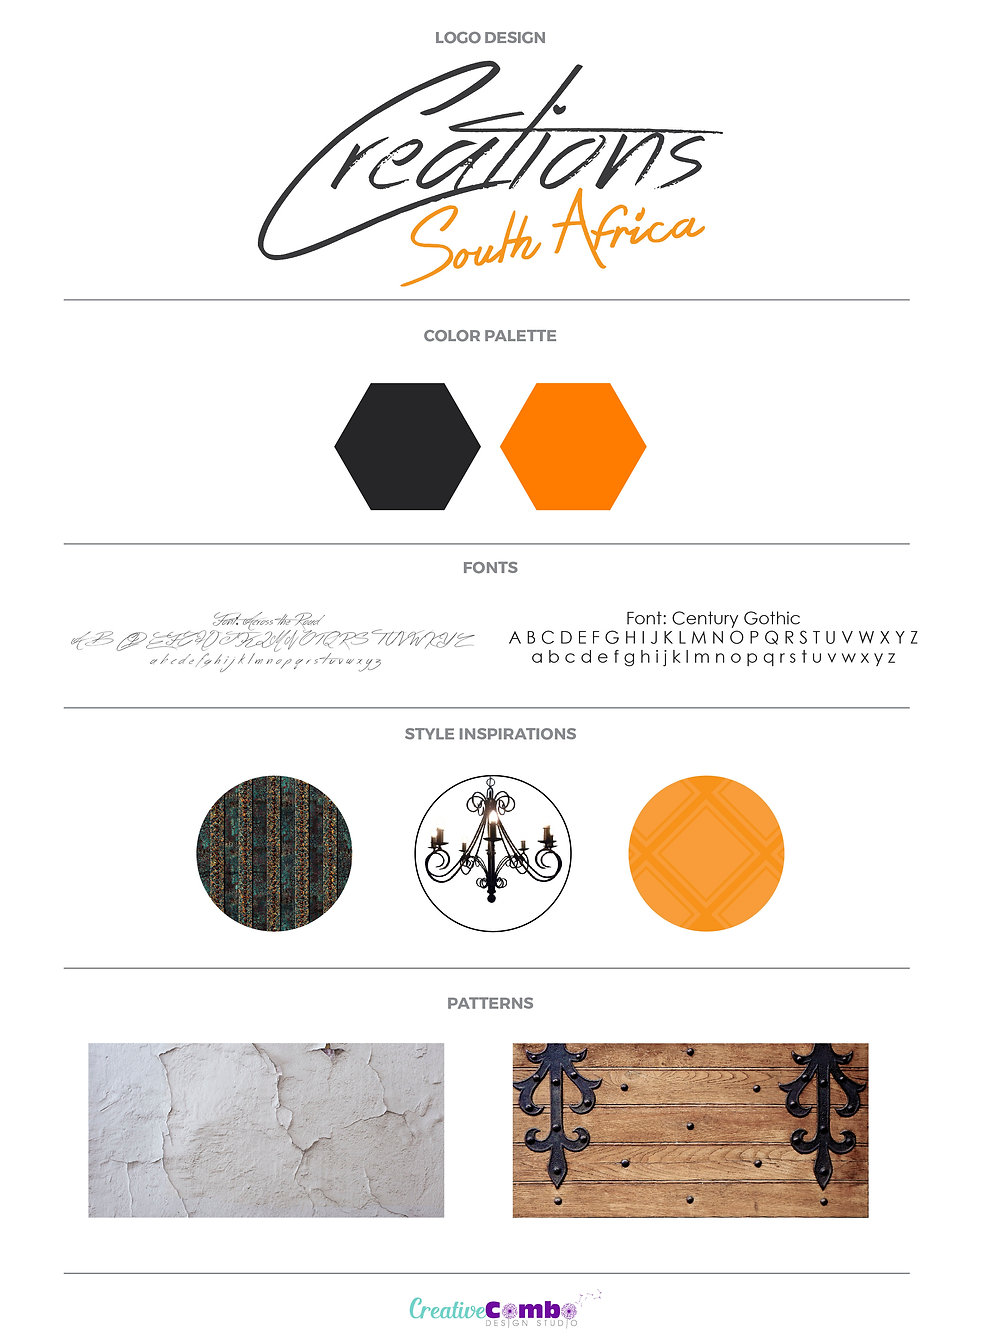 Creations South Africa Company Brand Design